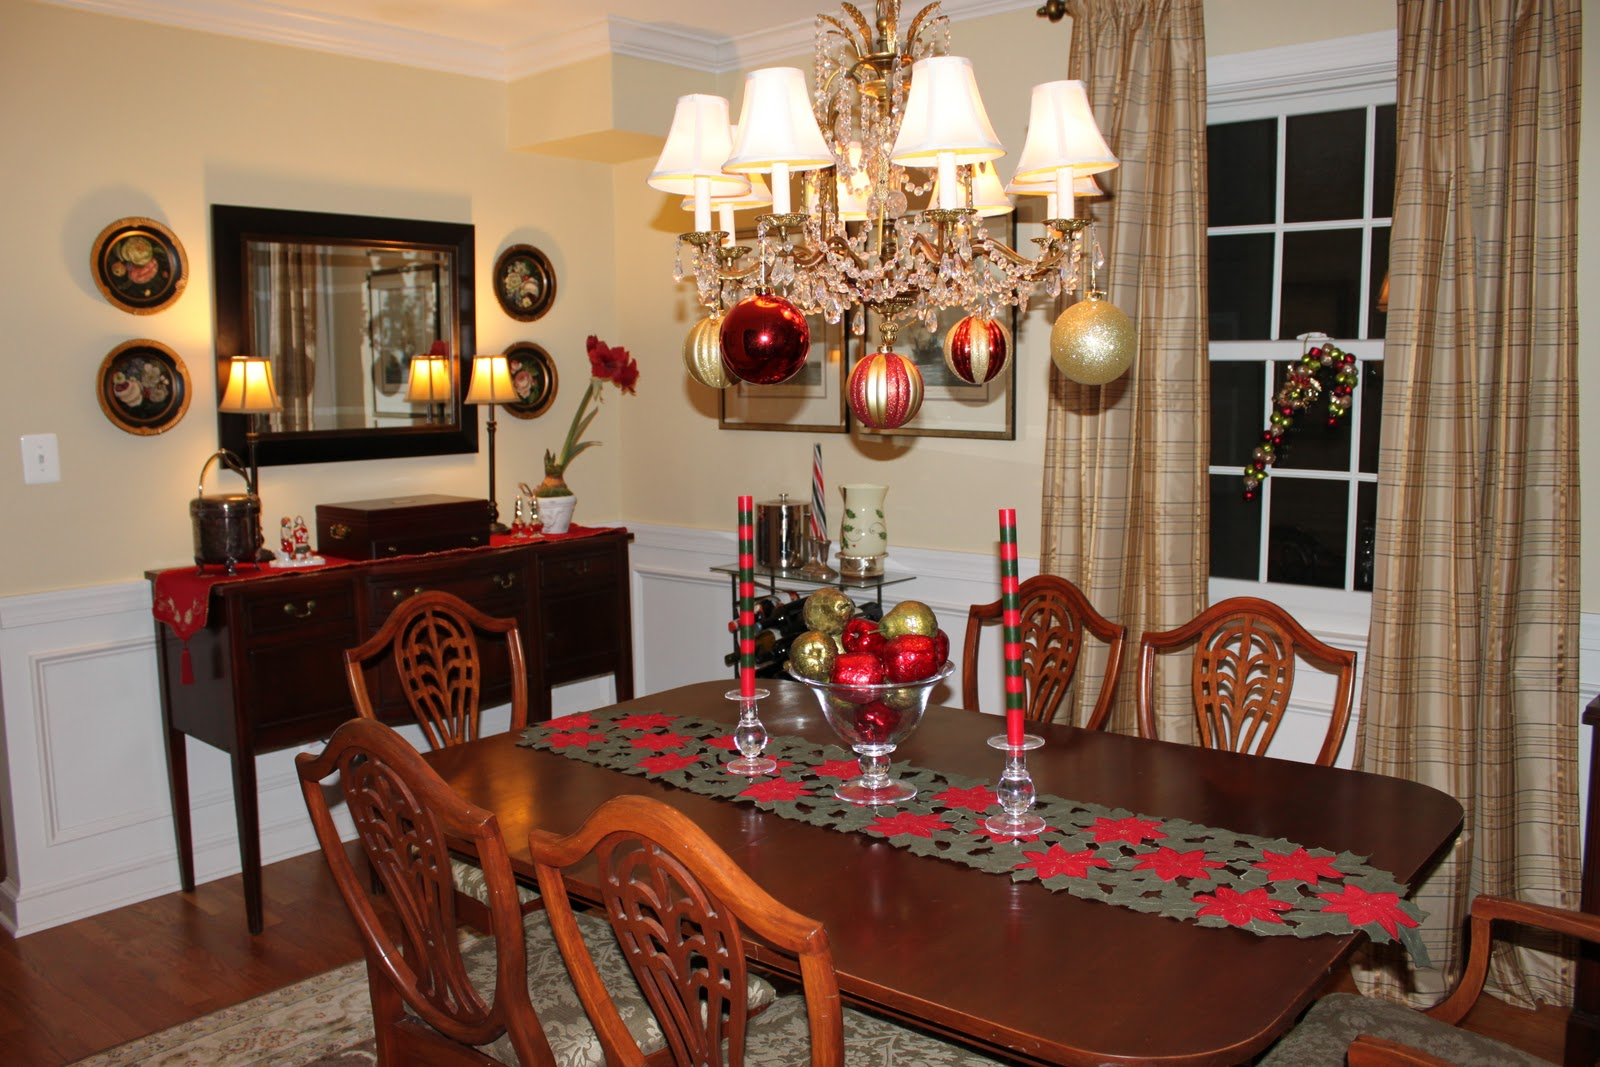 HOUSEography: HOLIDAYography: Our Budget Christmas Dining Room